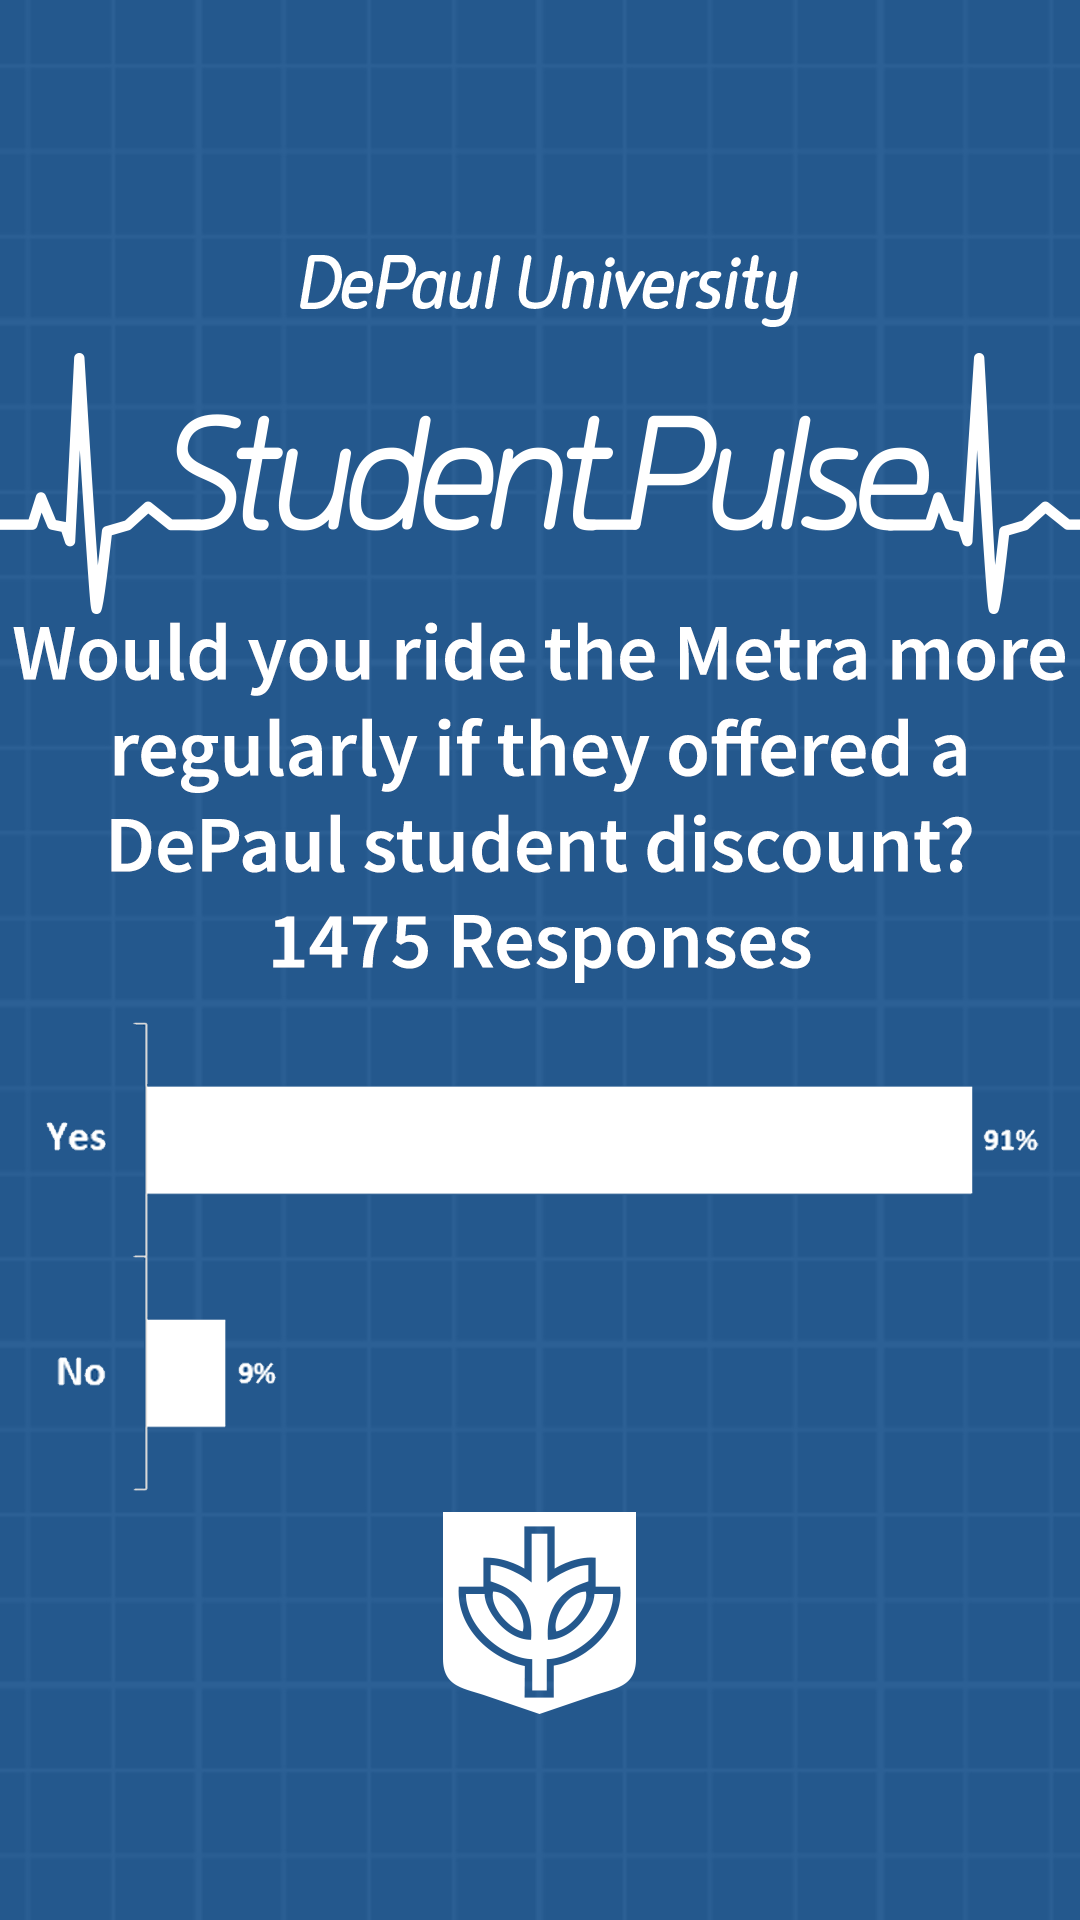 Would you ride Metra more regularly if they offered a Depaul student discount?